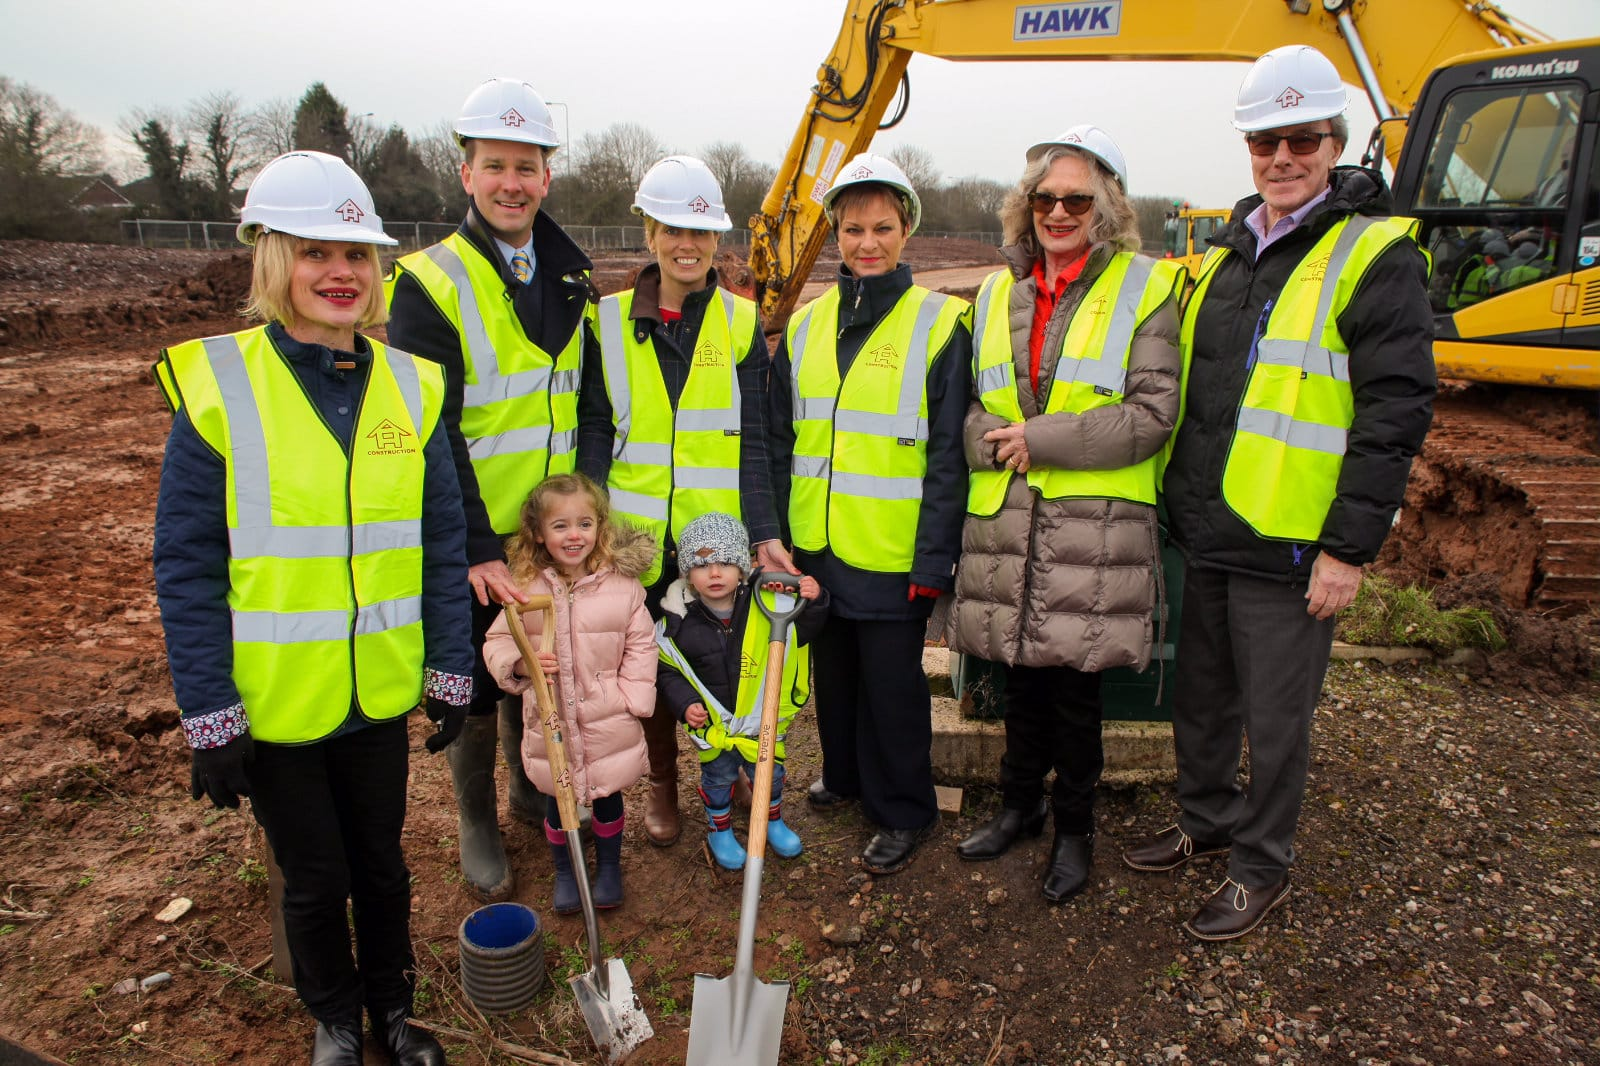 Turf cutting by The Edwards family at the site of Travelworld